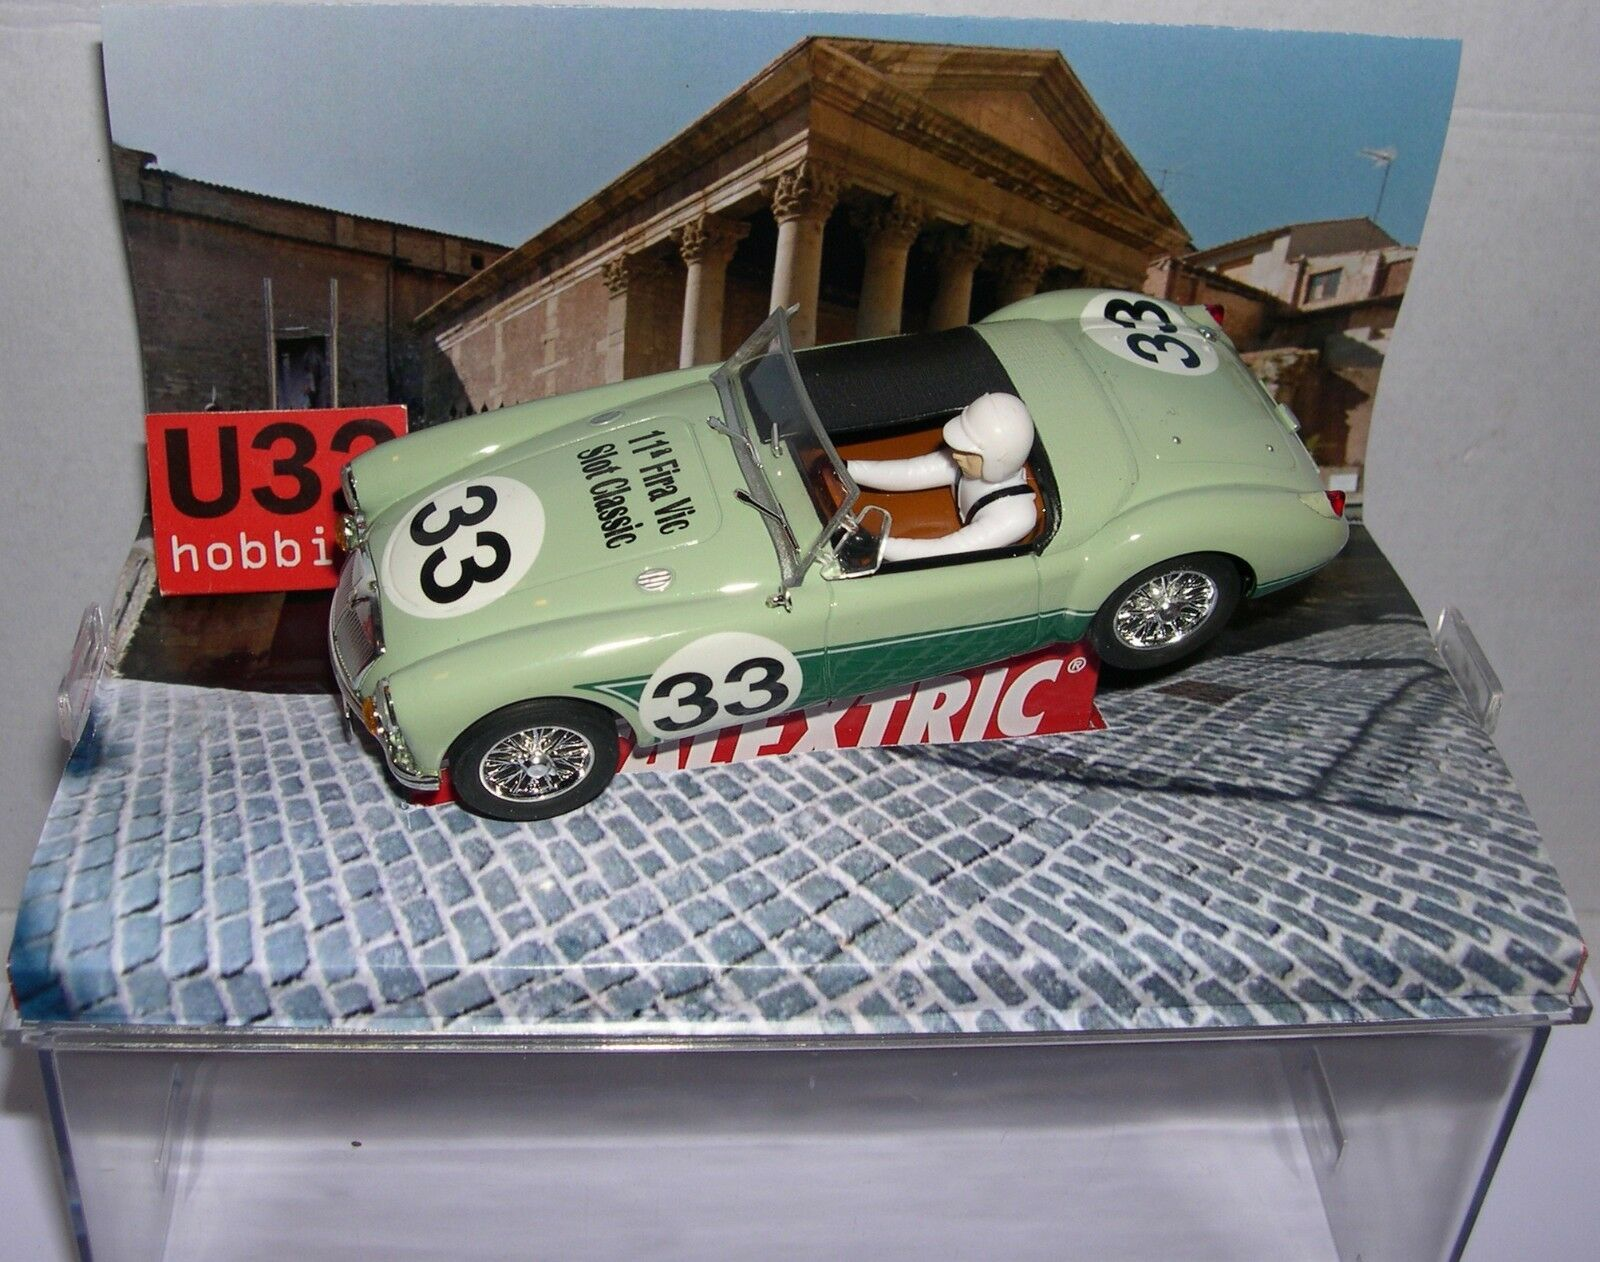 SCALEXTRIC MG TO 11 FIRA VIC SLOT CLASSIC 2017 LTED.ED.63 UNITS MB